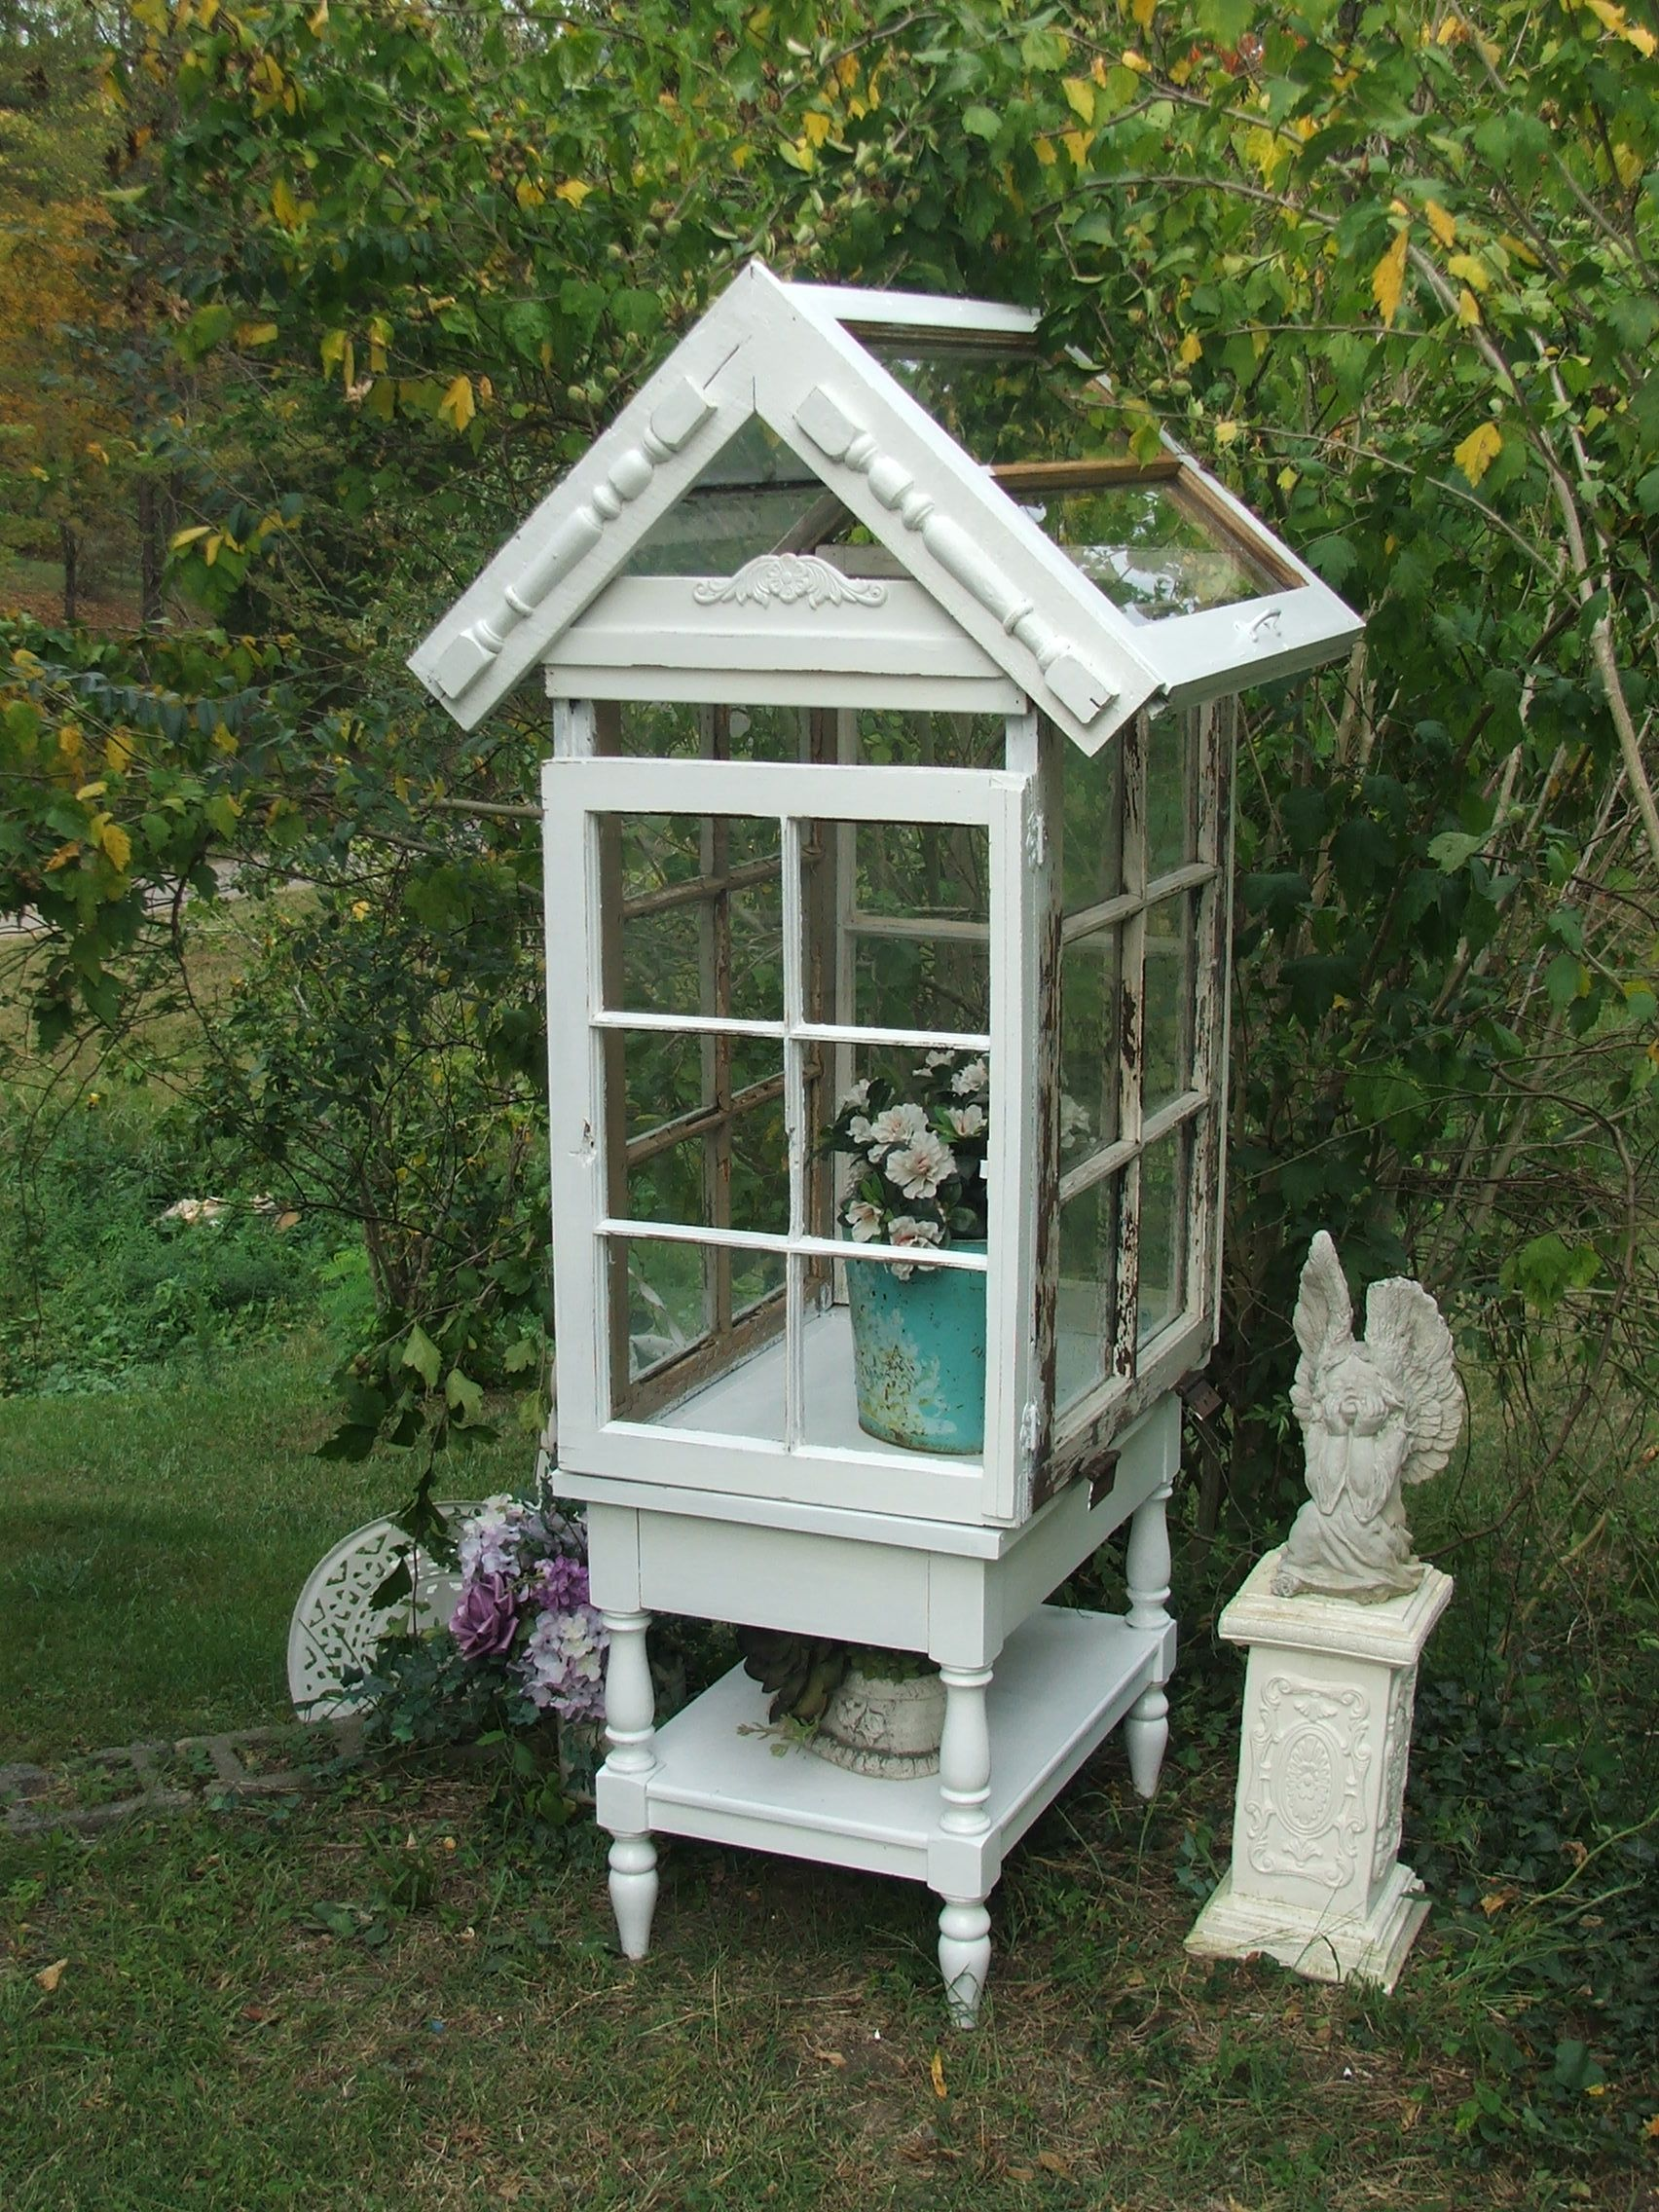 Garden Conservatory Old Windows And A Table Painted White